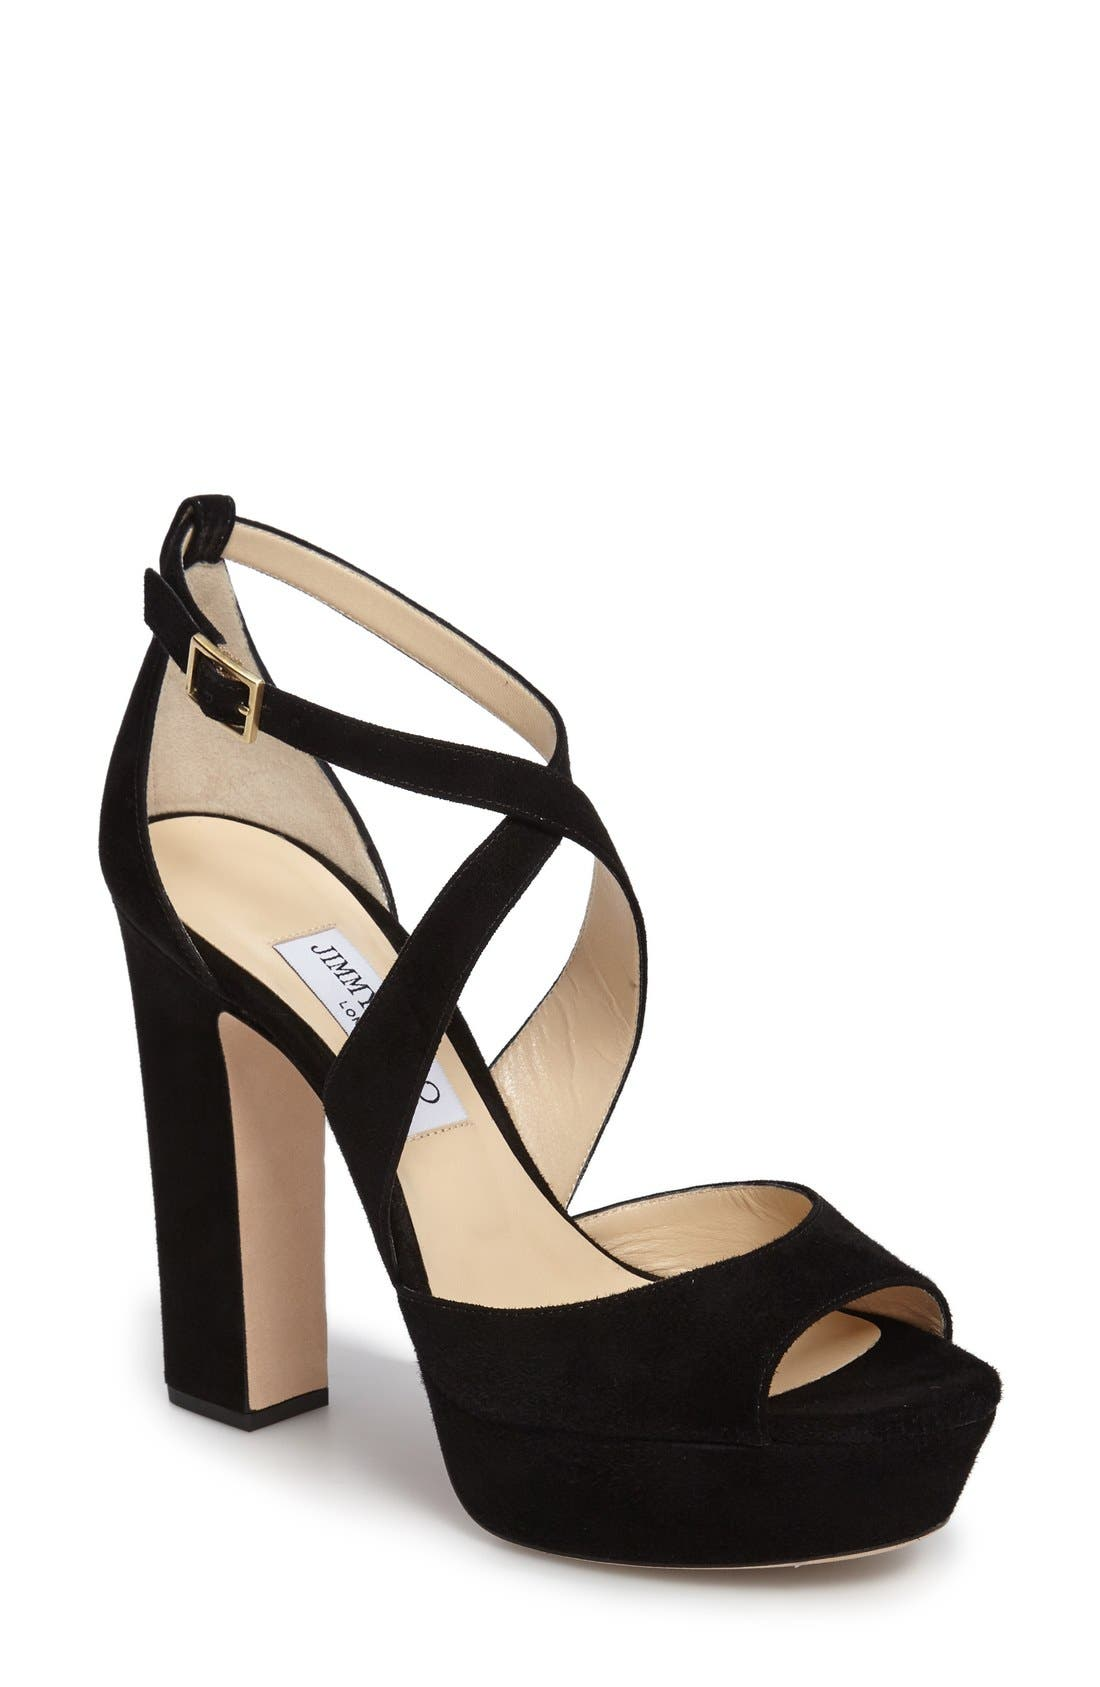 April Platform Sandal,                             Main thumbnail 1, color,                             Black Suede